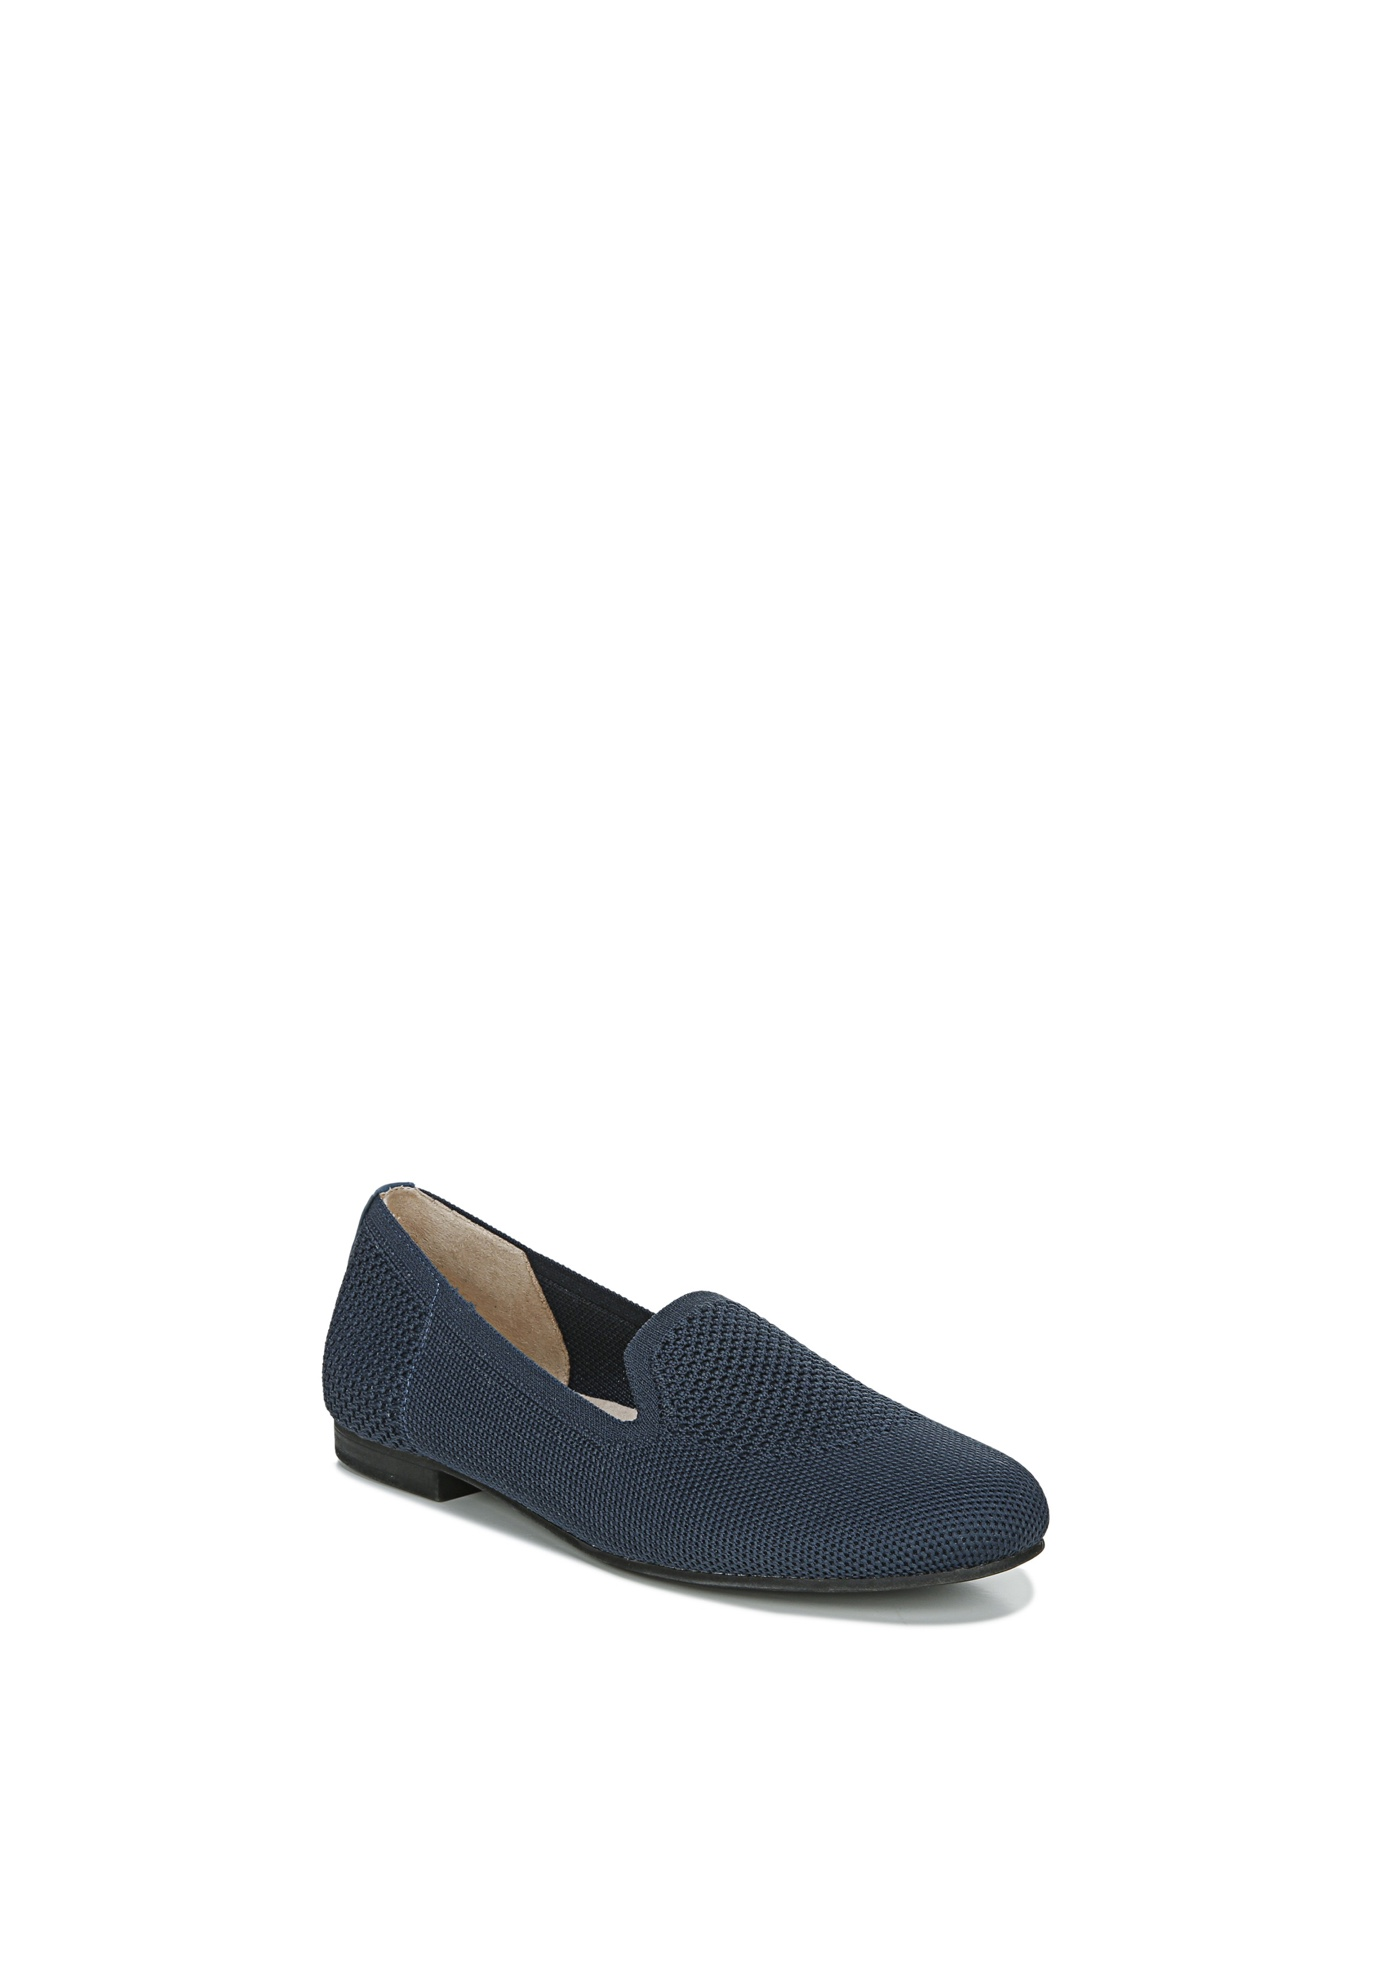 Alexis2 Loafer by SOUL Naturalizer,